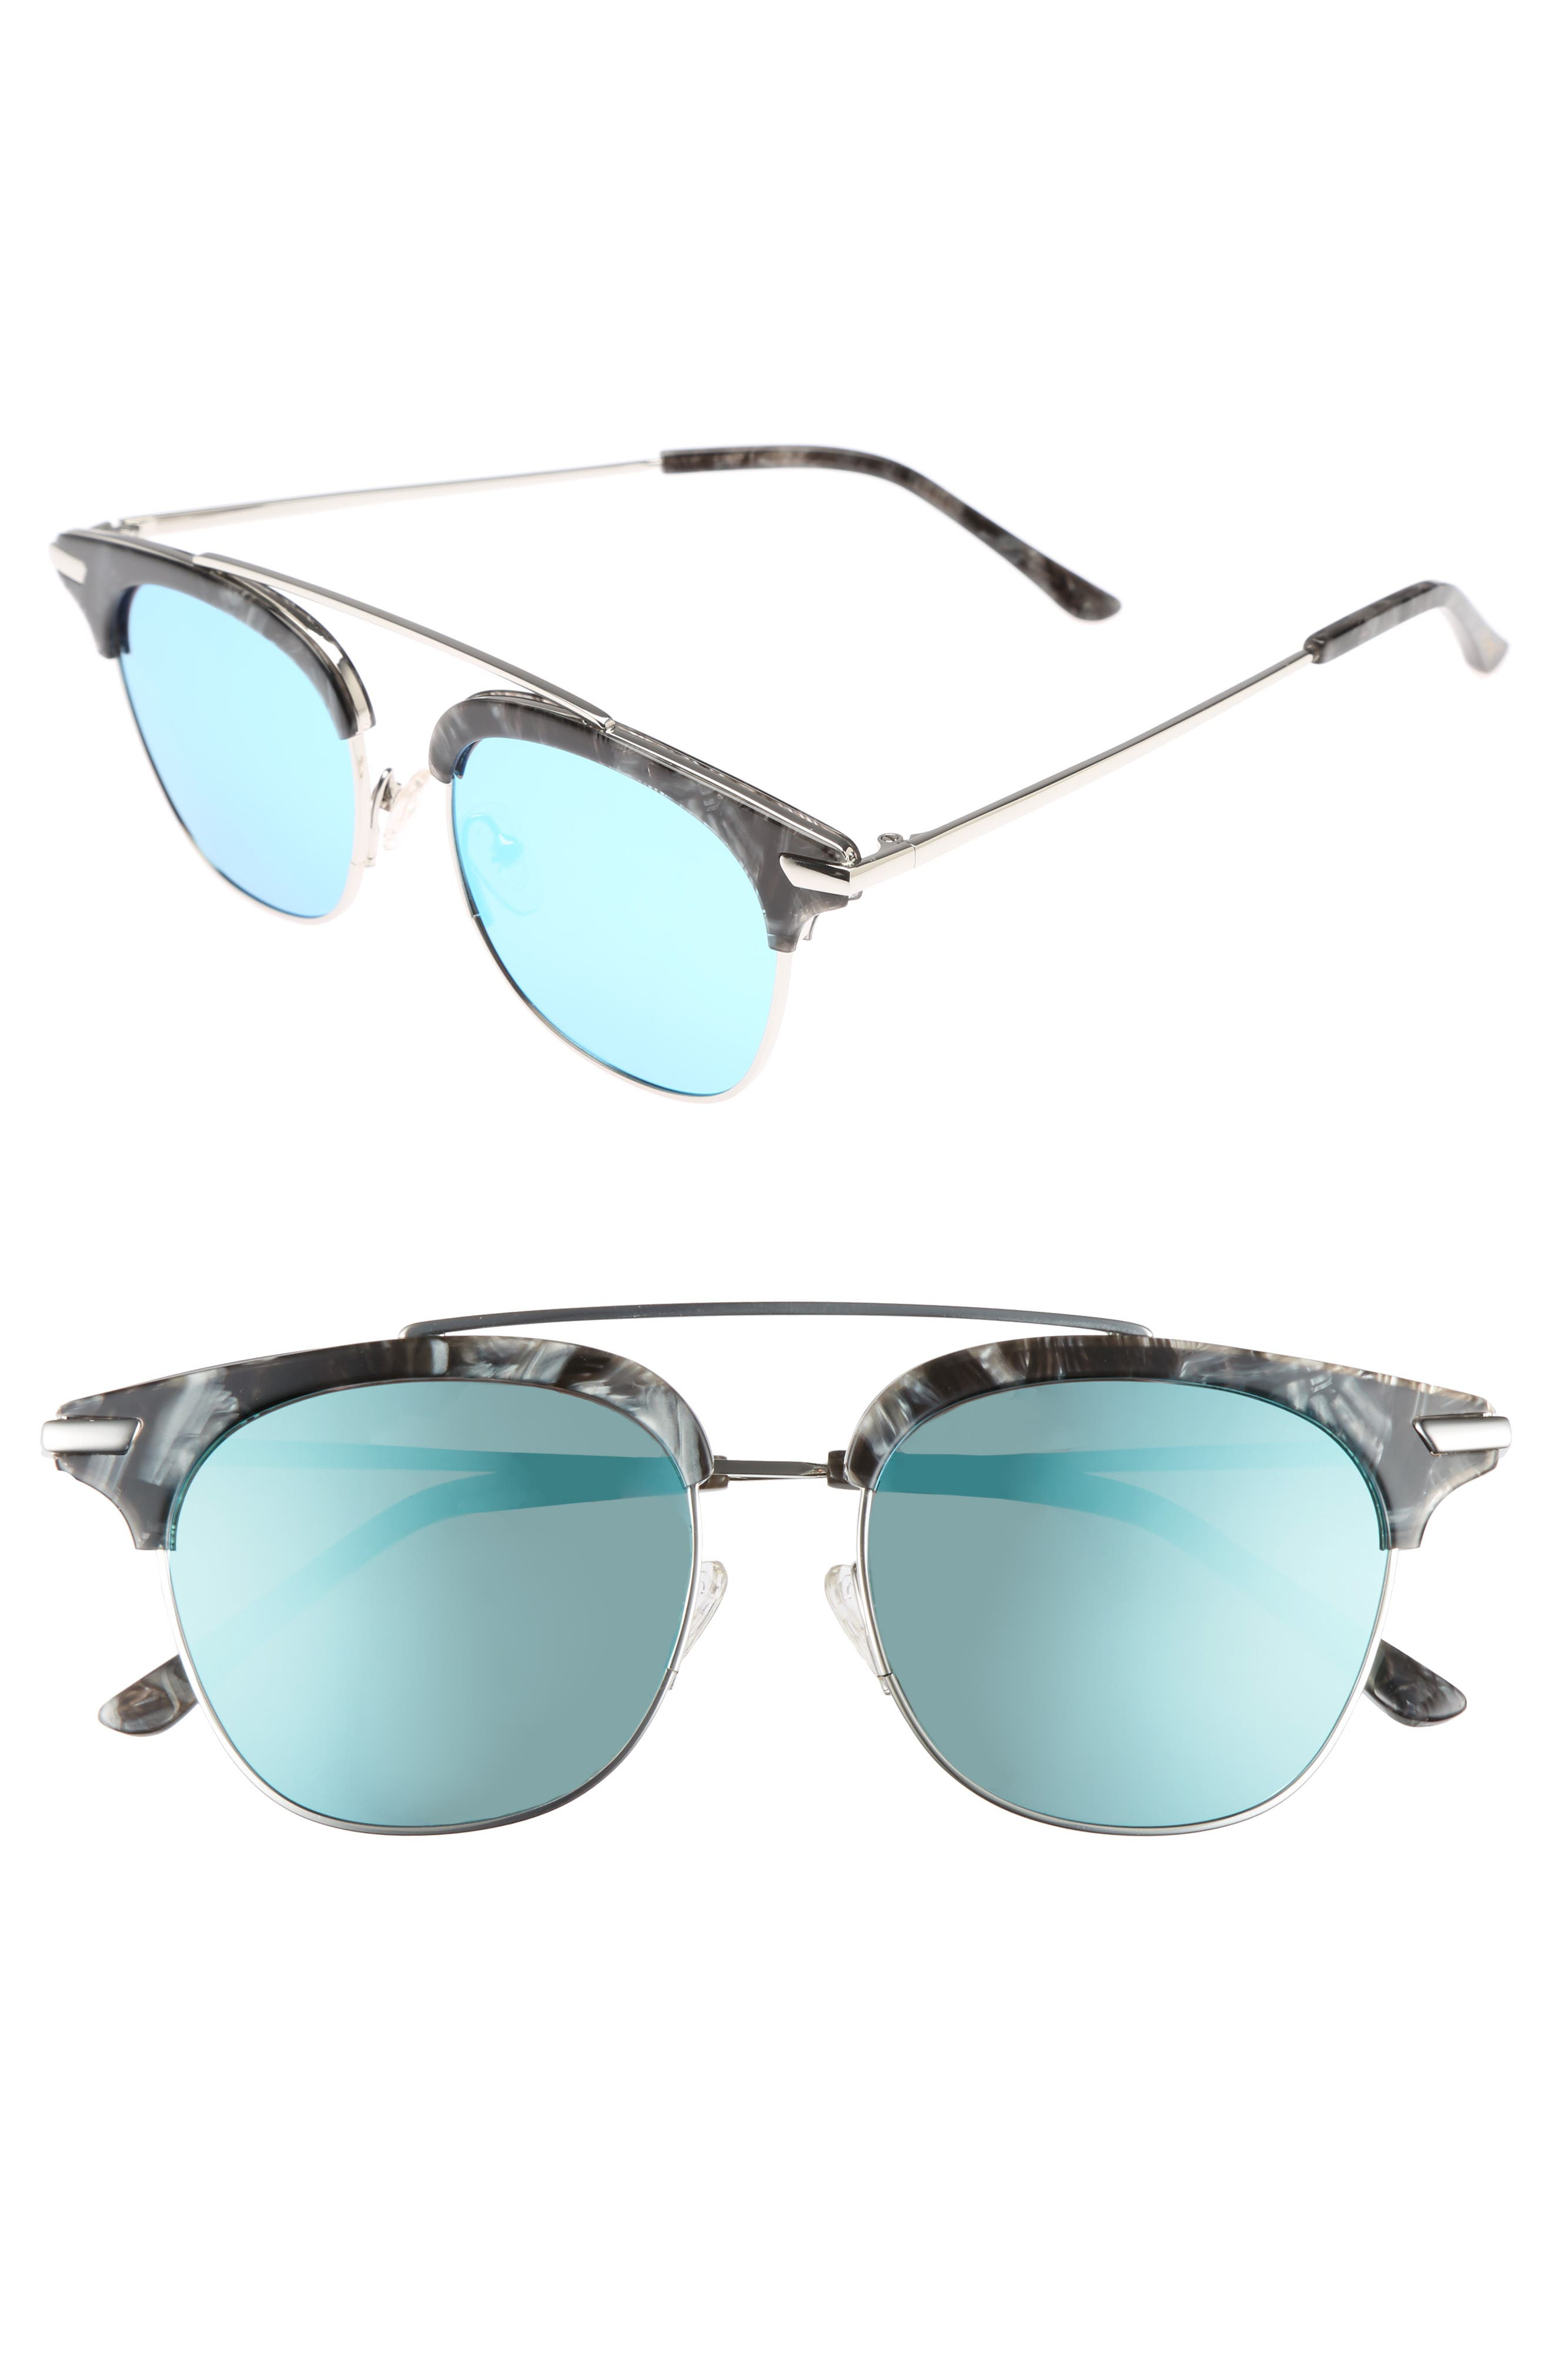 Bonnie Clyde Midway 51mm Polarized Brow Bar Sunglasses